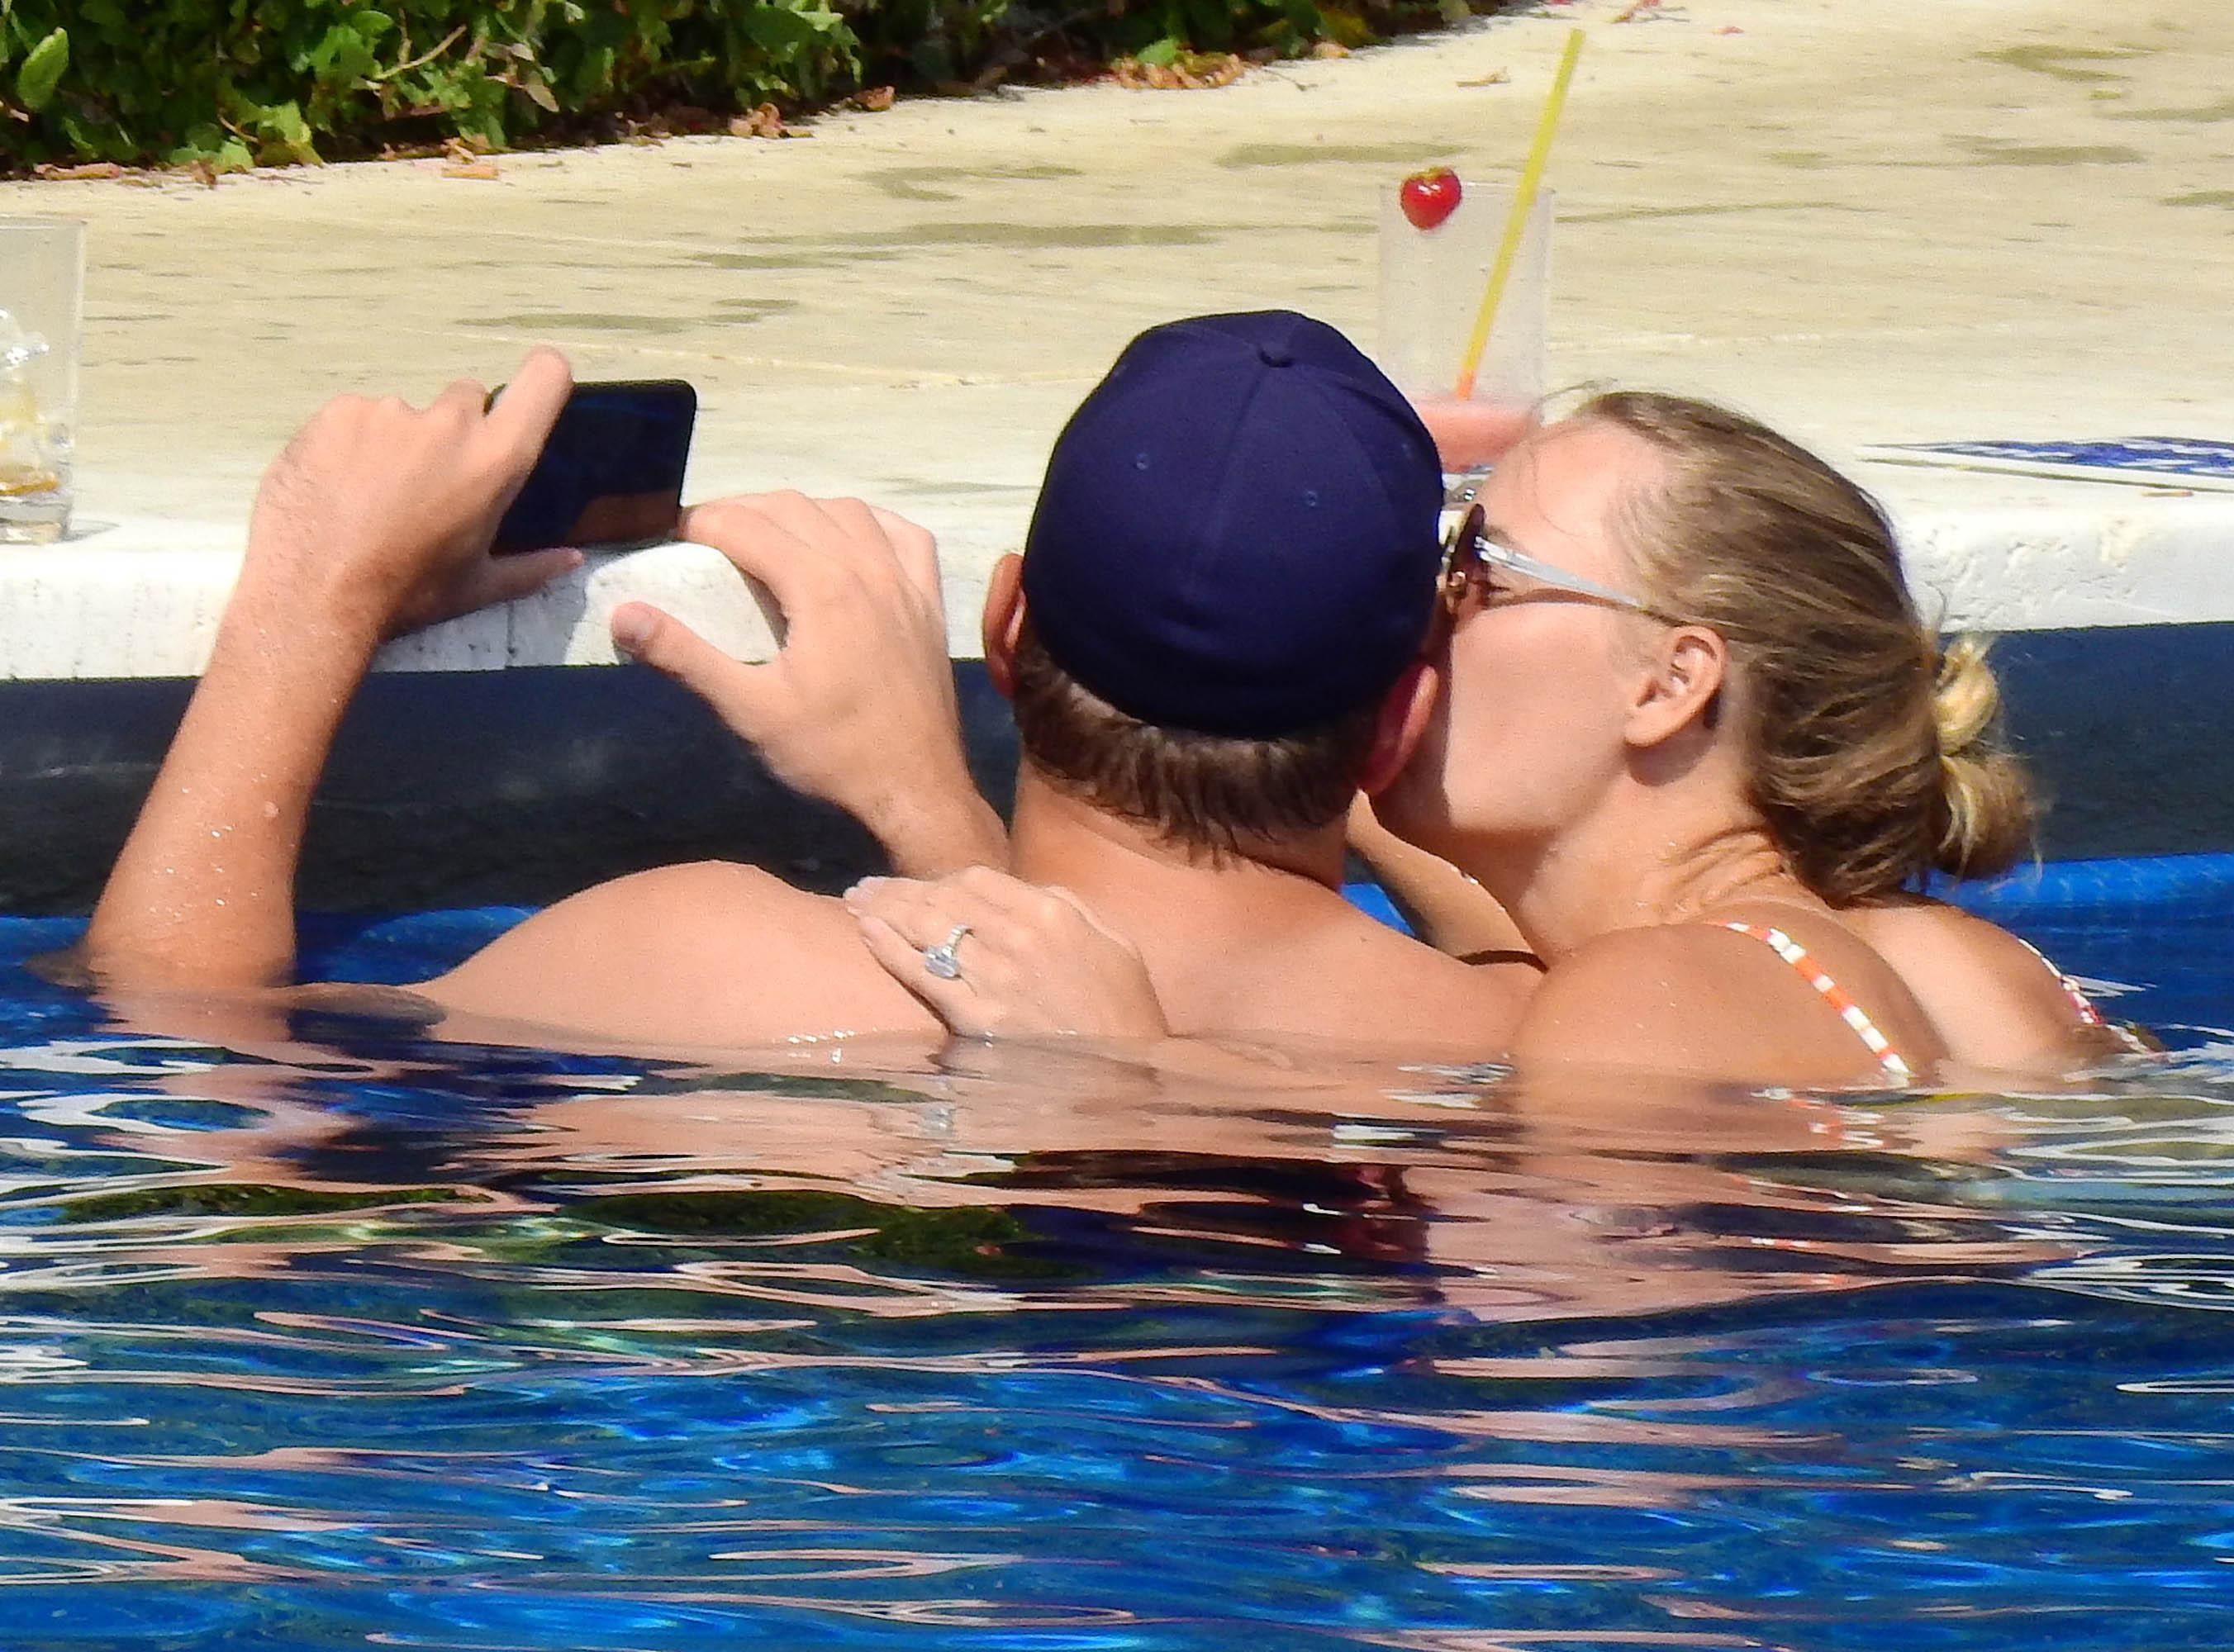 Wozniacki announced she was dating ex-NBA star Lee on Valentine's Day last year